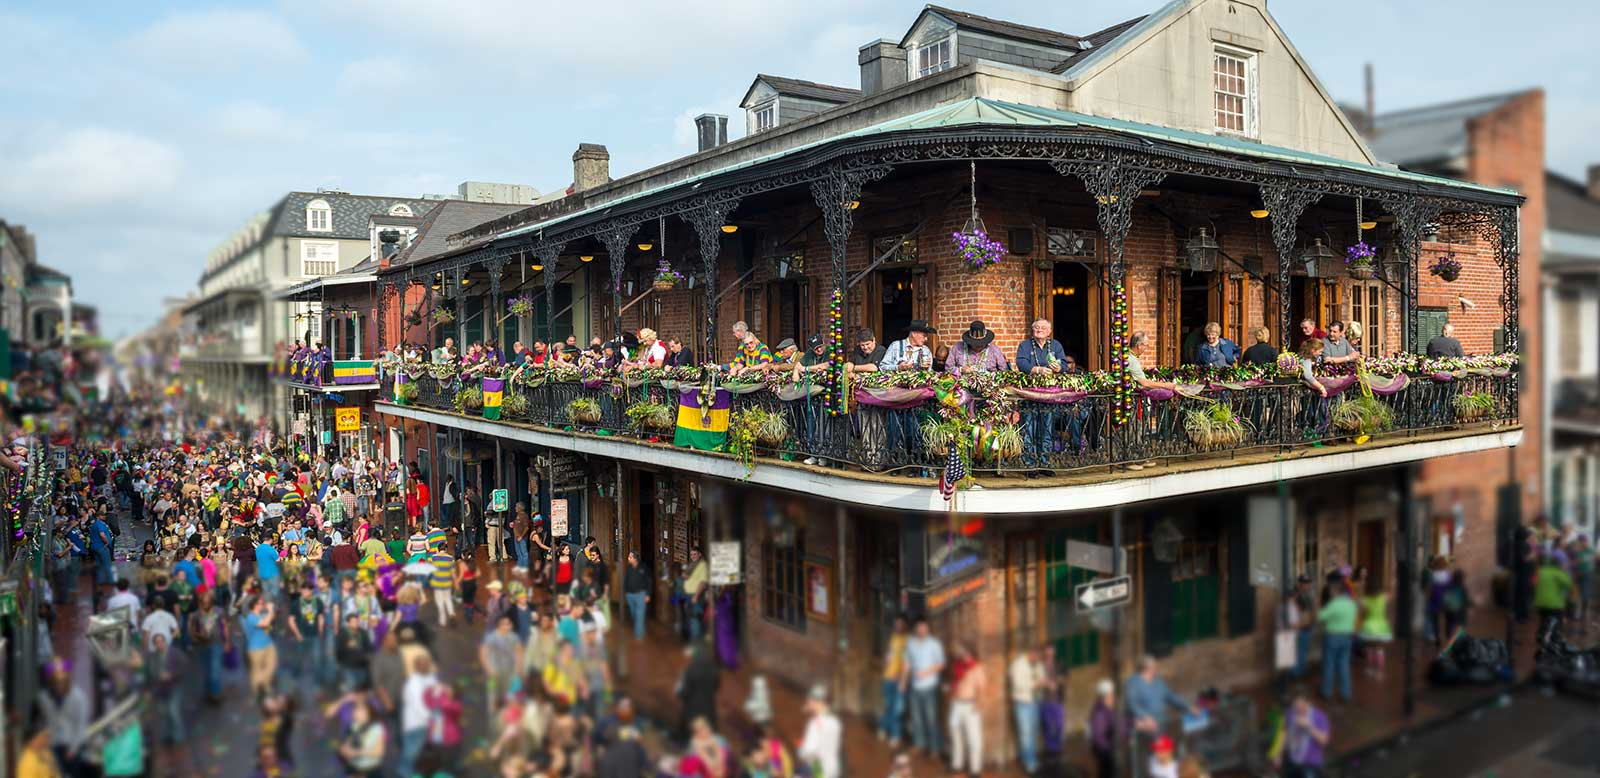 New Orleans Calendar Of Events 2020 2020 Mardi Gras Parade Schedule | Mardi Gras New Orleans